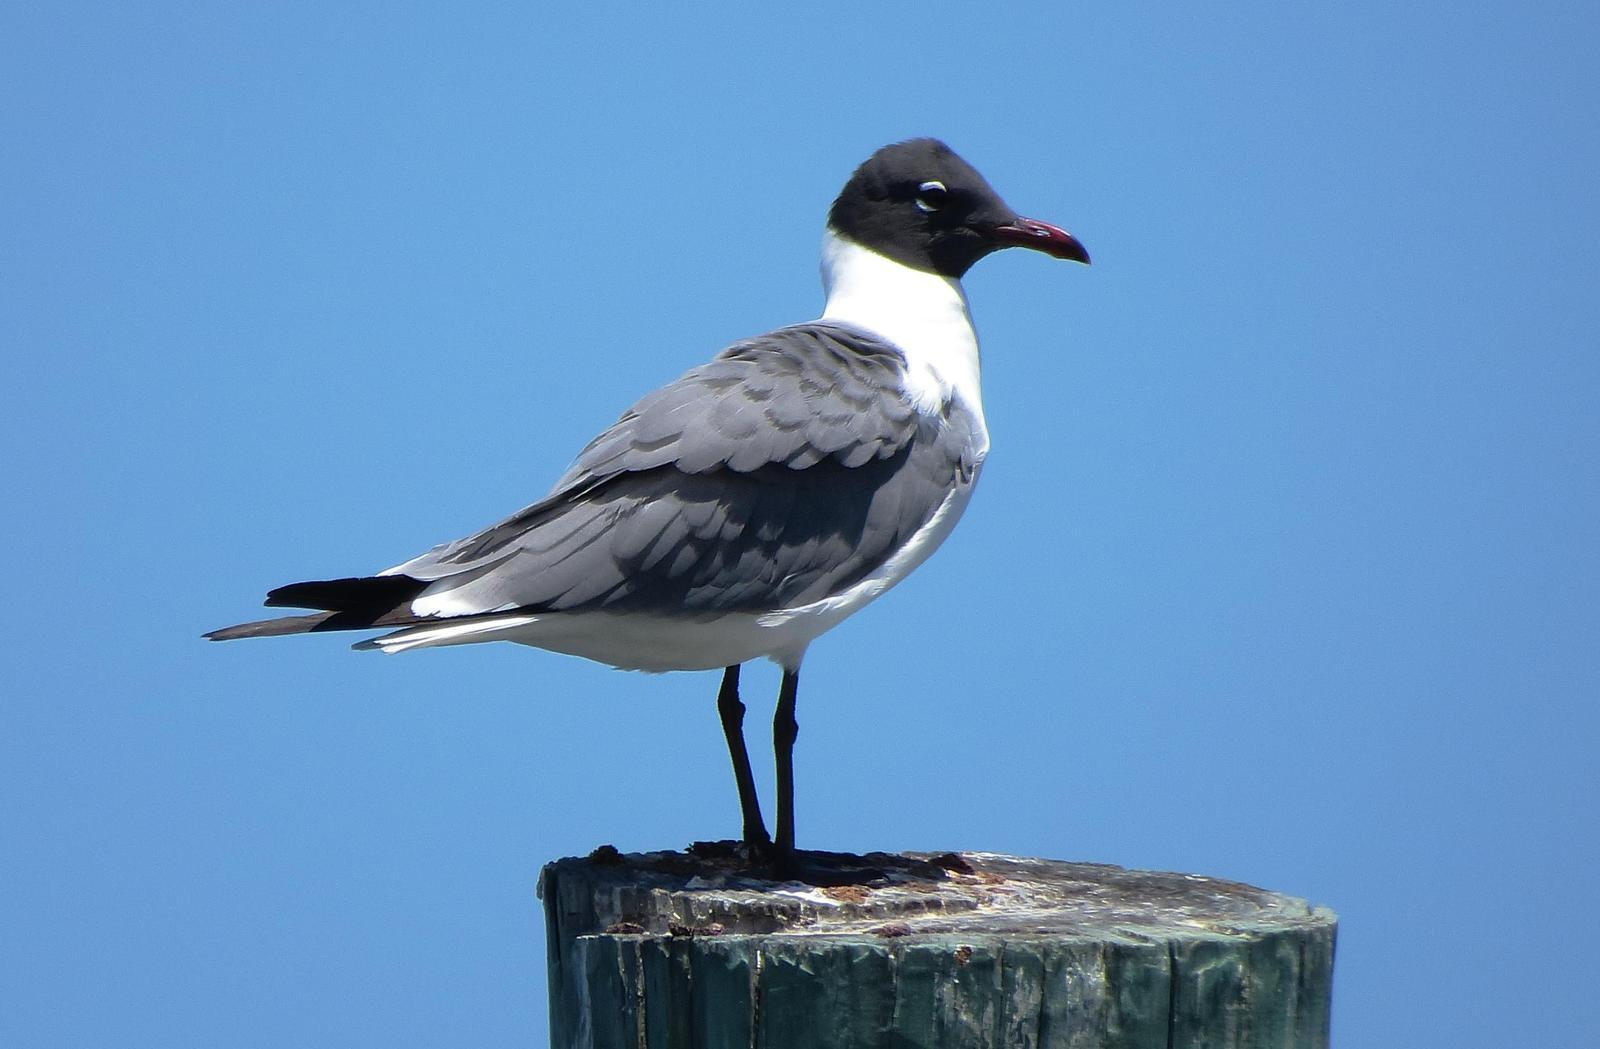 Laughing Gull Photo by Kent Jensen